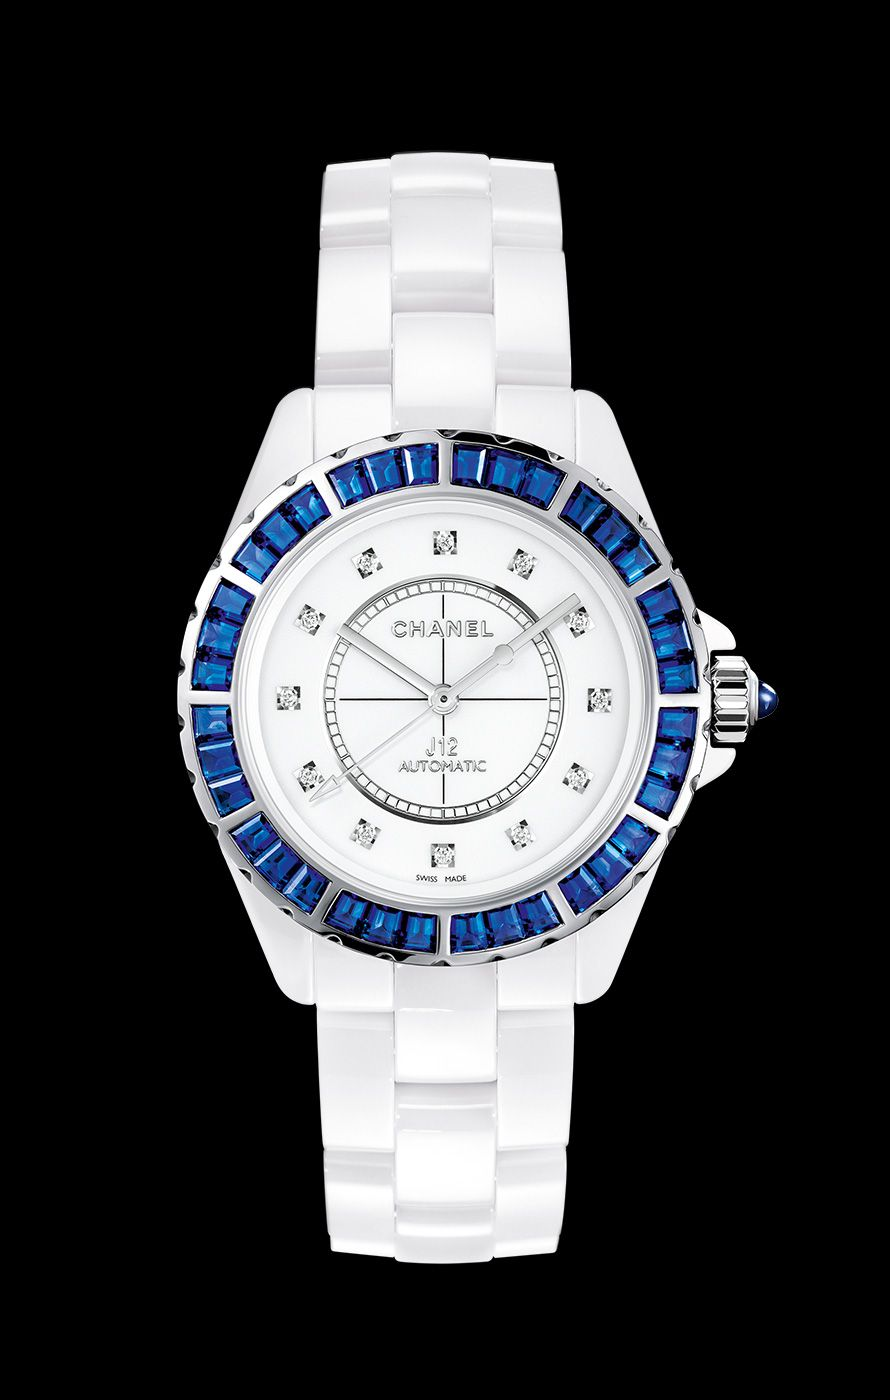 ca jewelry en crop steel pearl chanel watches white watch mother c of grey and default dial ceramic diamond indicator